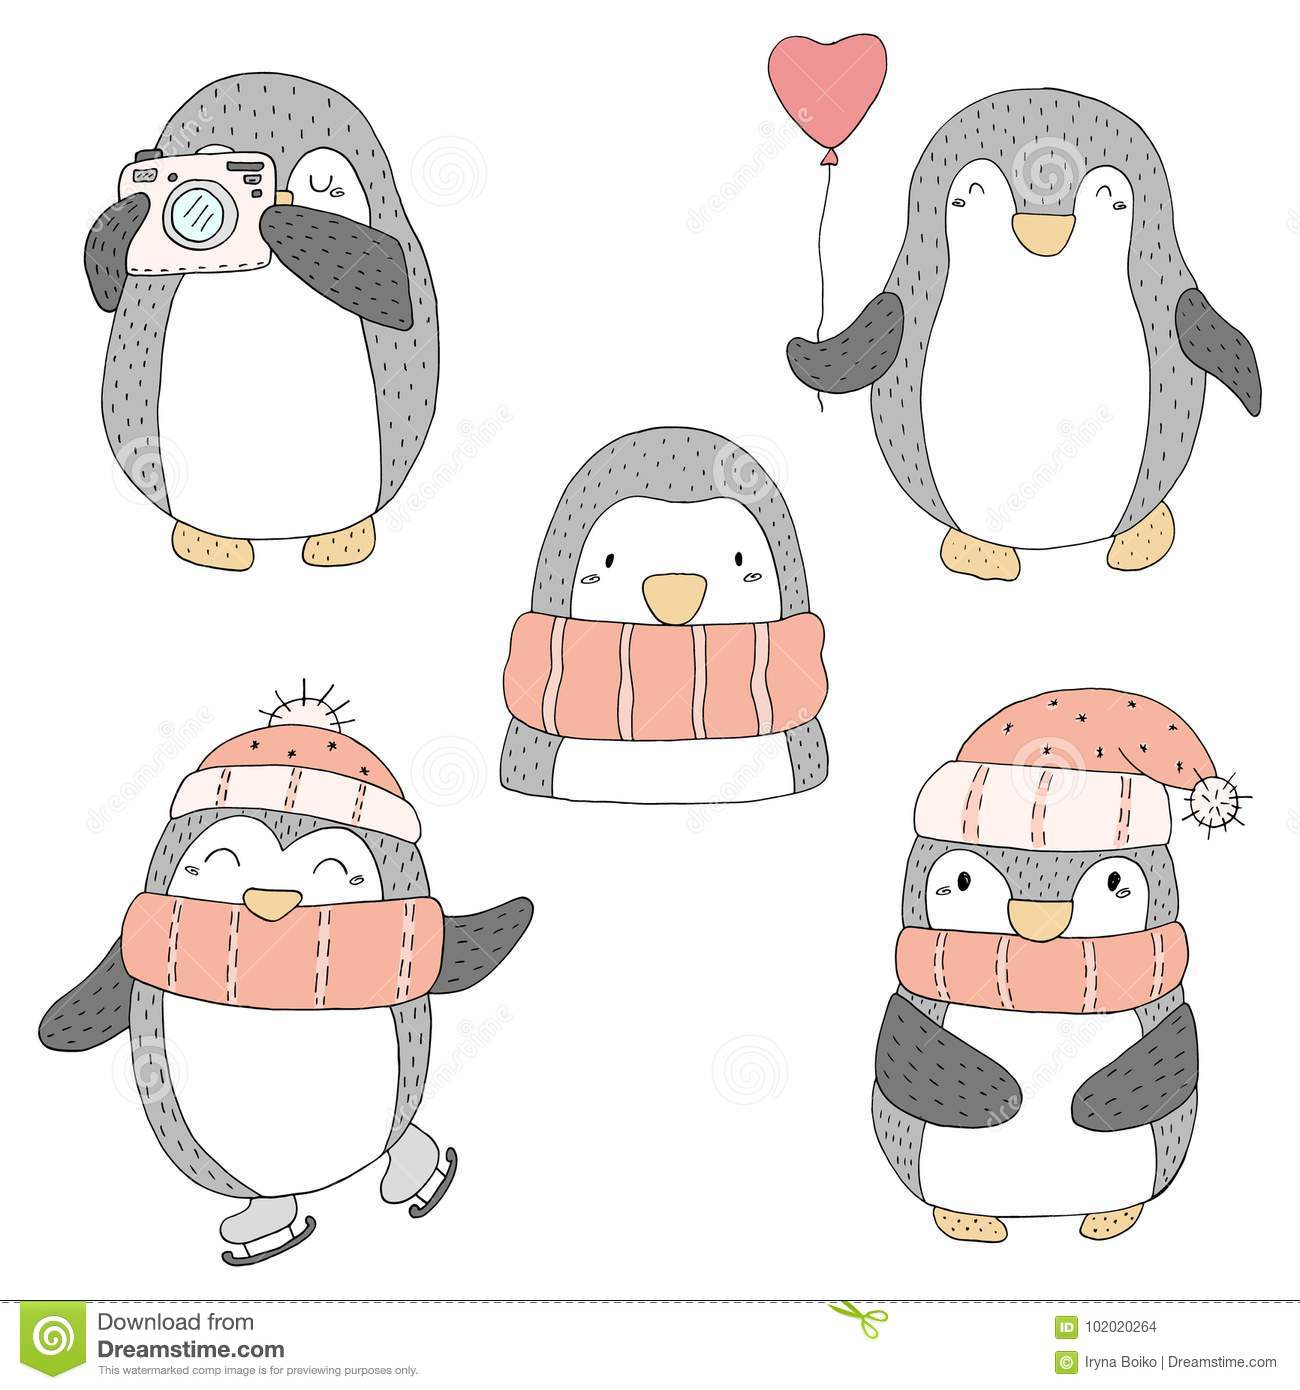 graphic about Penguins Printable referred to as Lovely Hand Drawn Penguins Established . Printable Templates Inventory